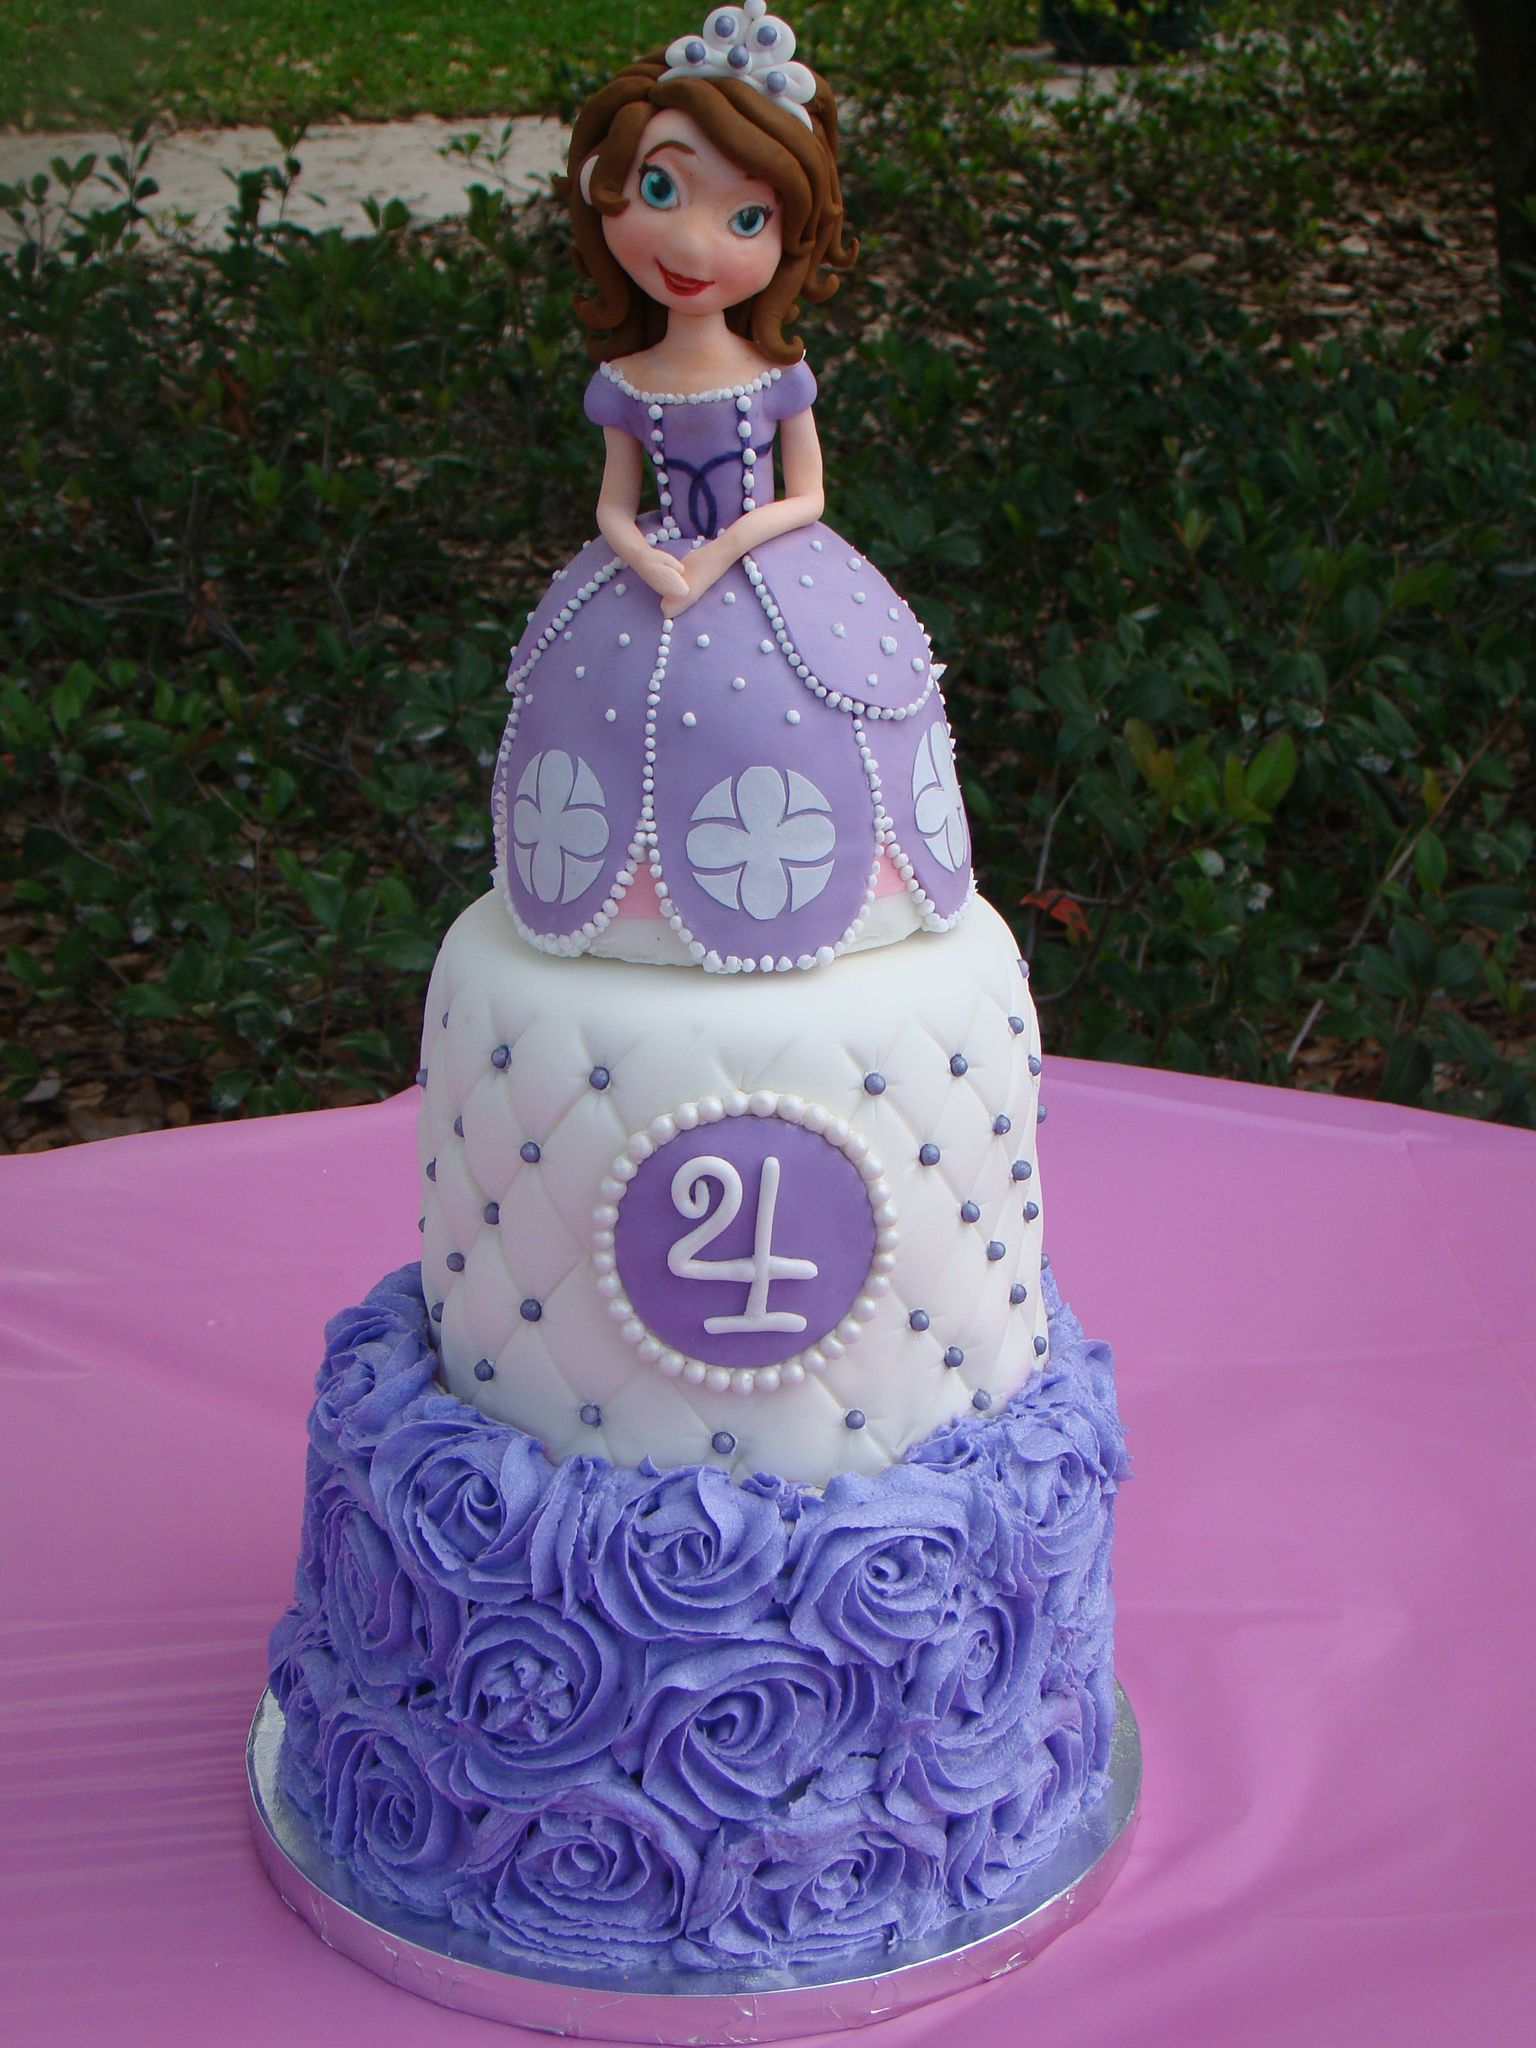 Pleasant Sofia The First Birthday Cake With Images Sofia The First Funny Birthday Cards Online Necthendildamsfinfo